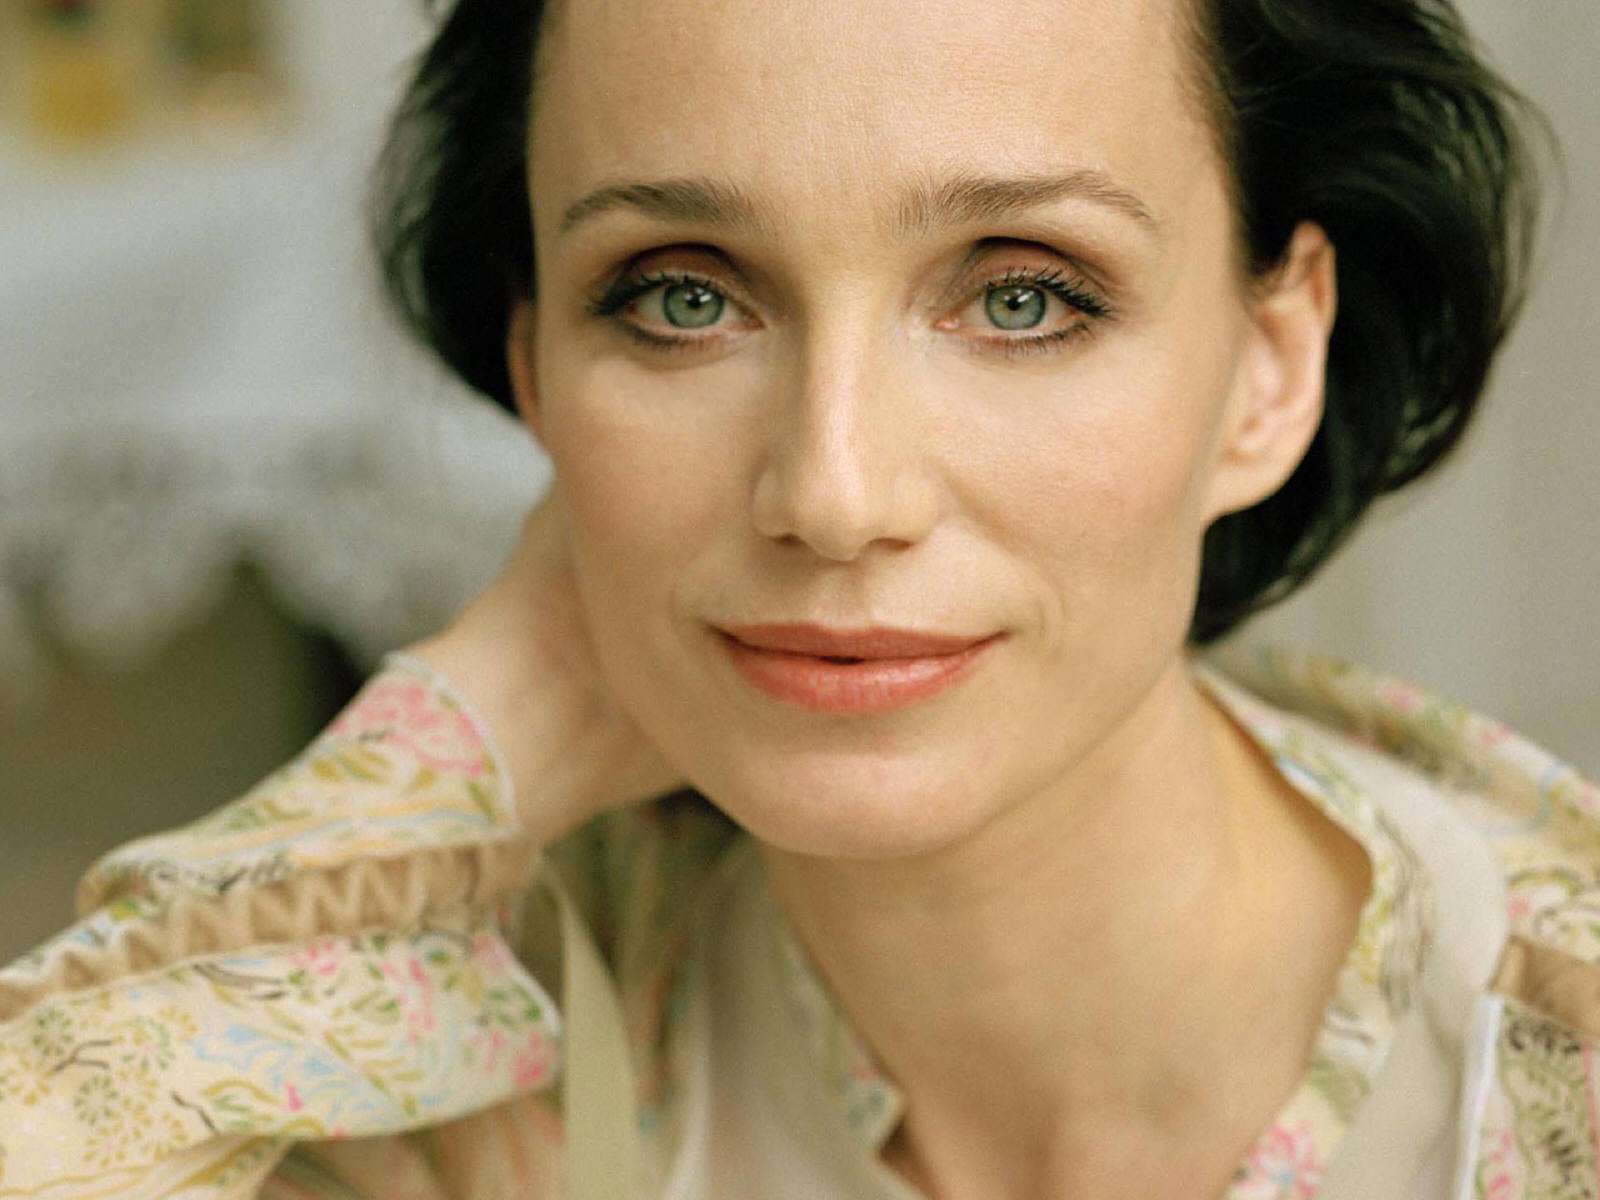 Kristin Scott Thomas (born 1960) nude photos 2019